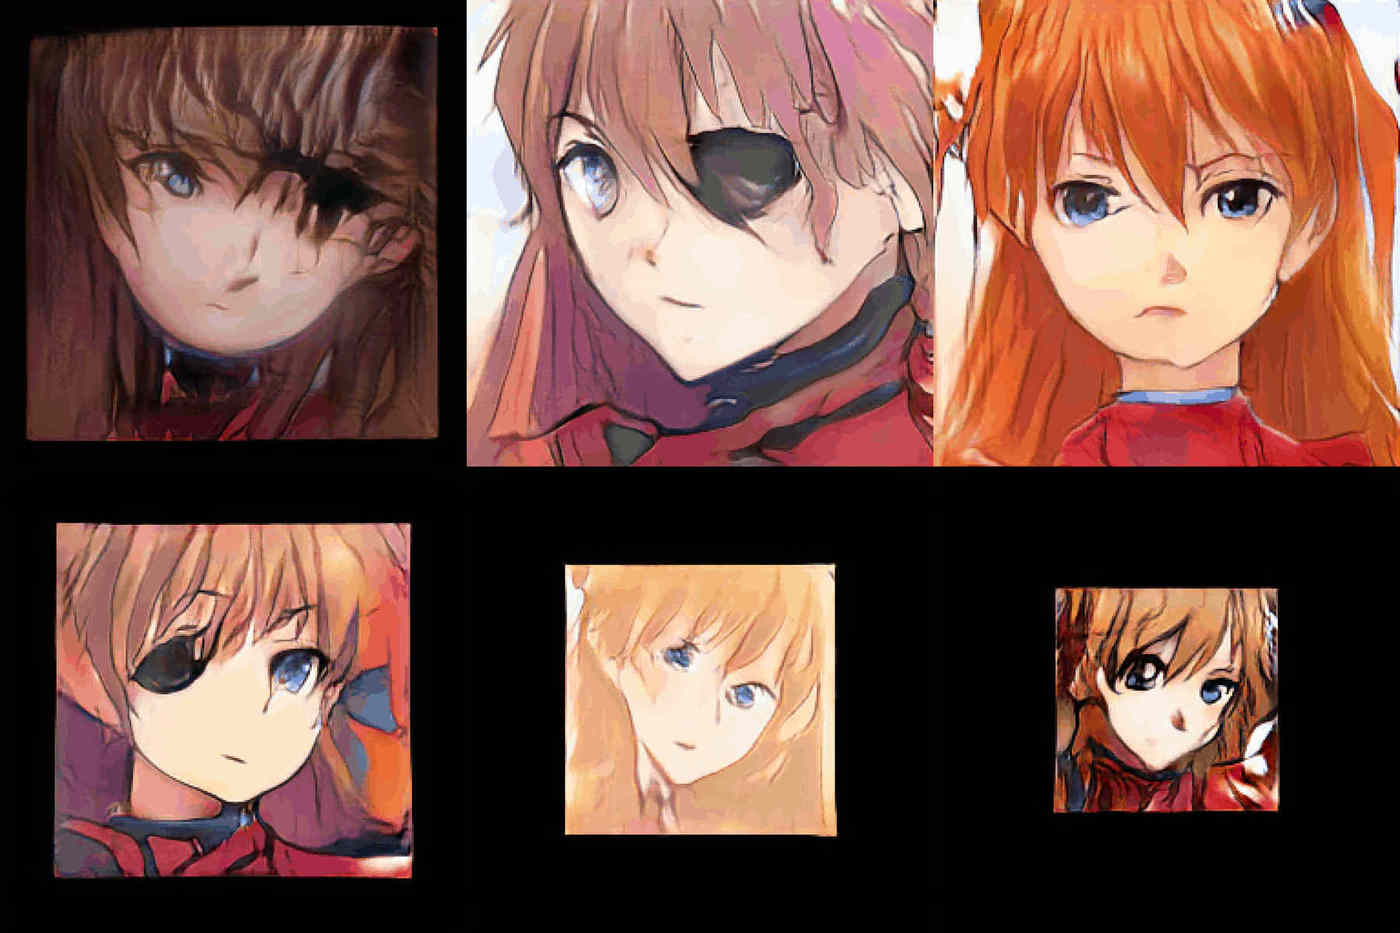 512px Asuka faces, ProGAN